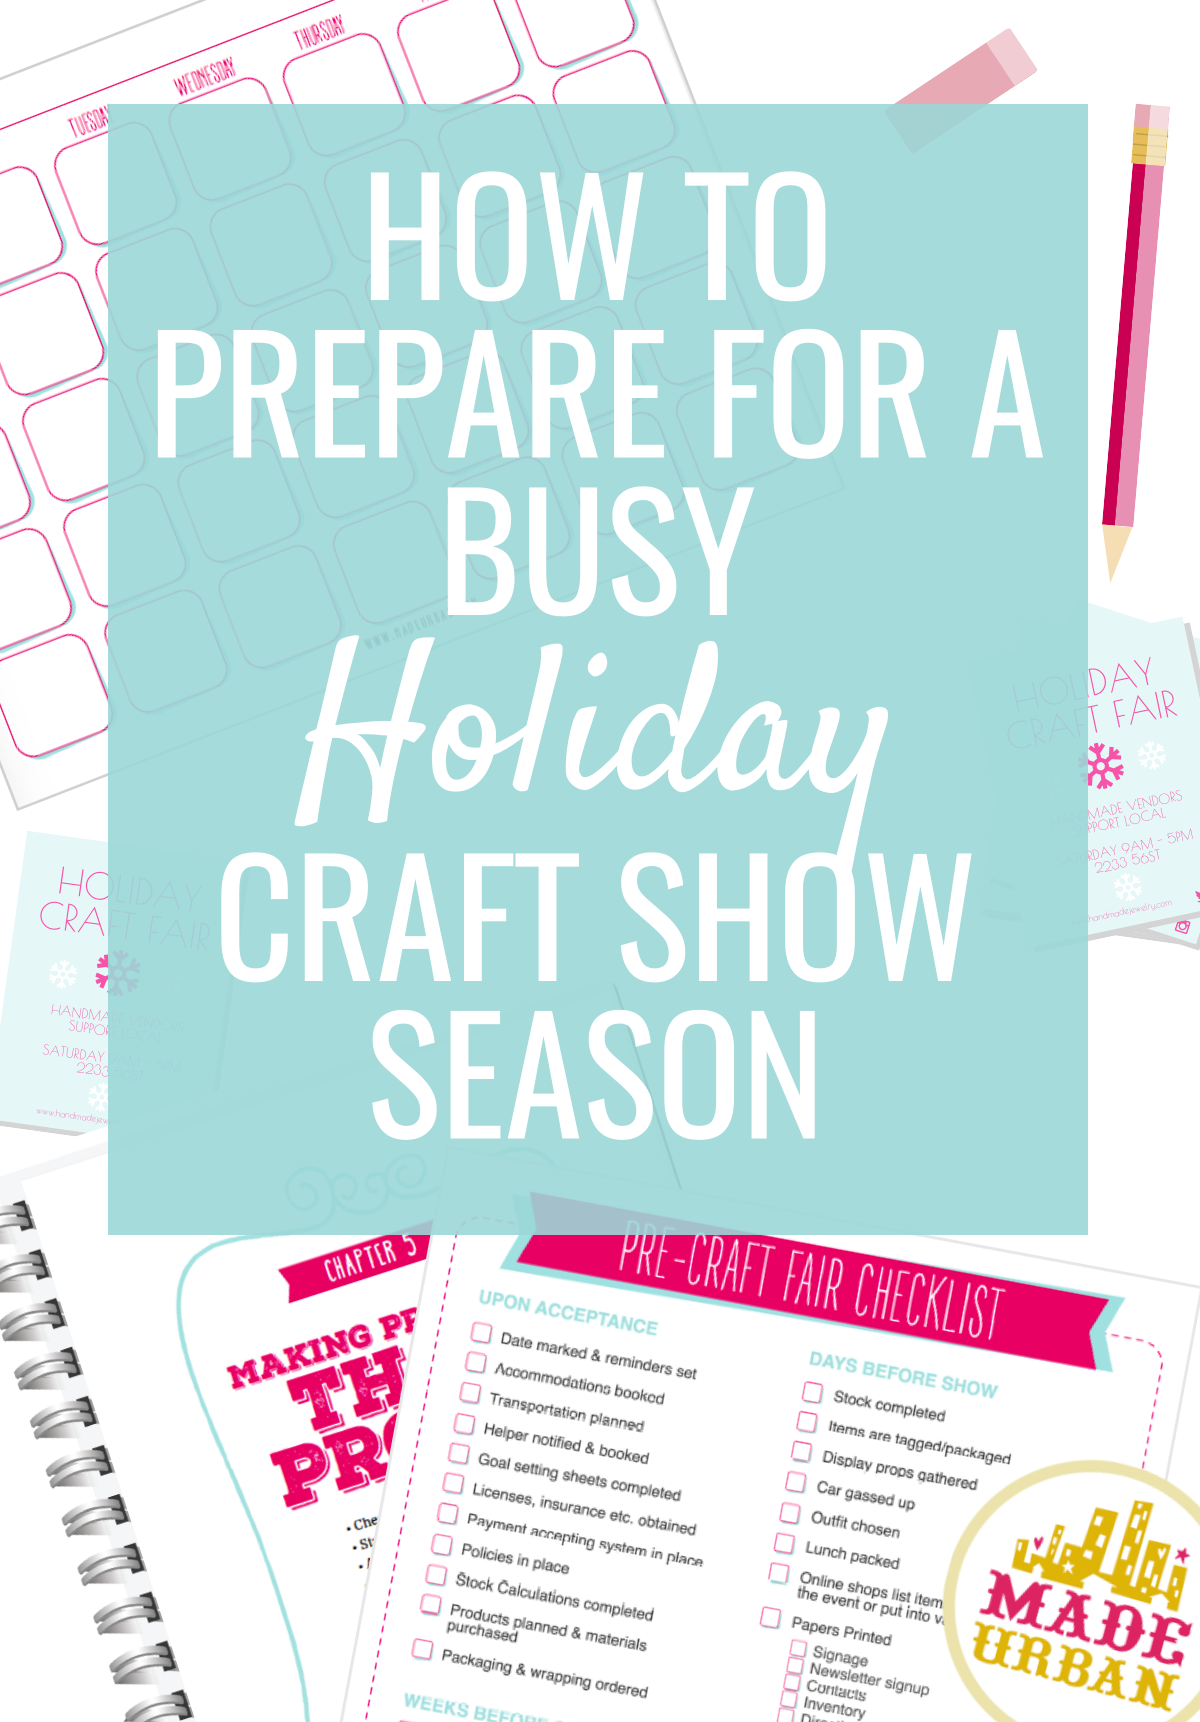 There are a lot of tasks to fit into your schedule before the busy holiday craft show season begins. Plan and prepare for it by following these steps.